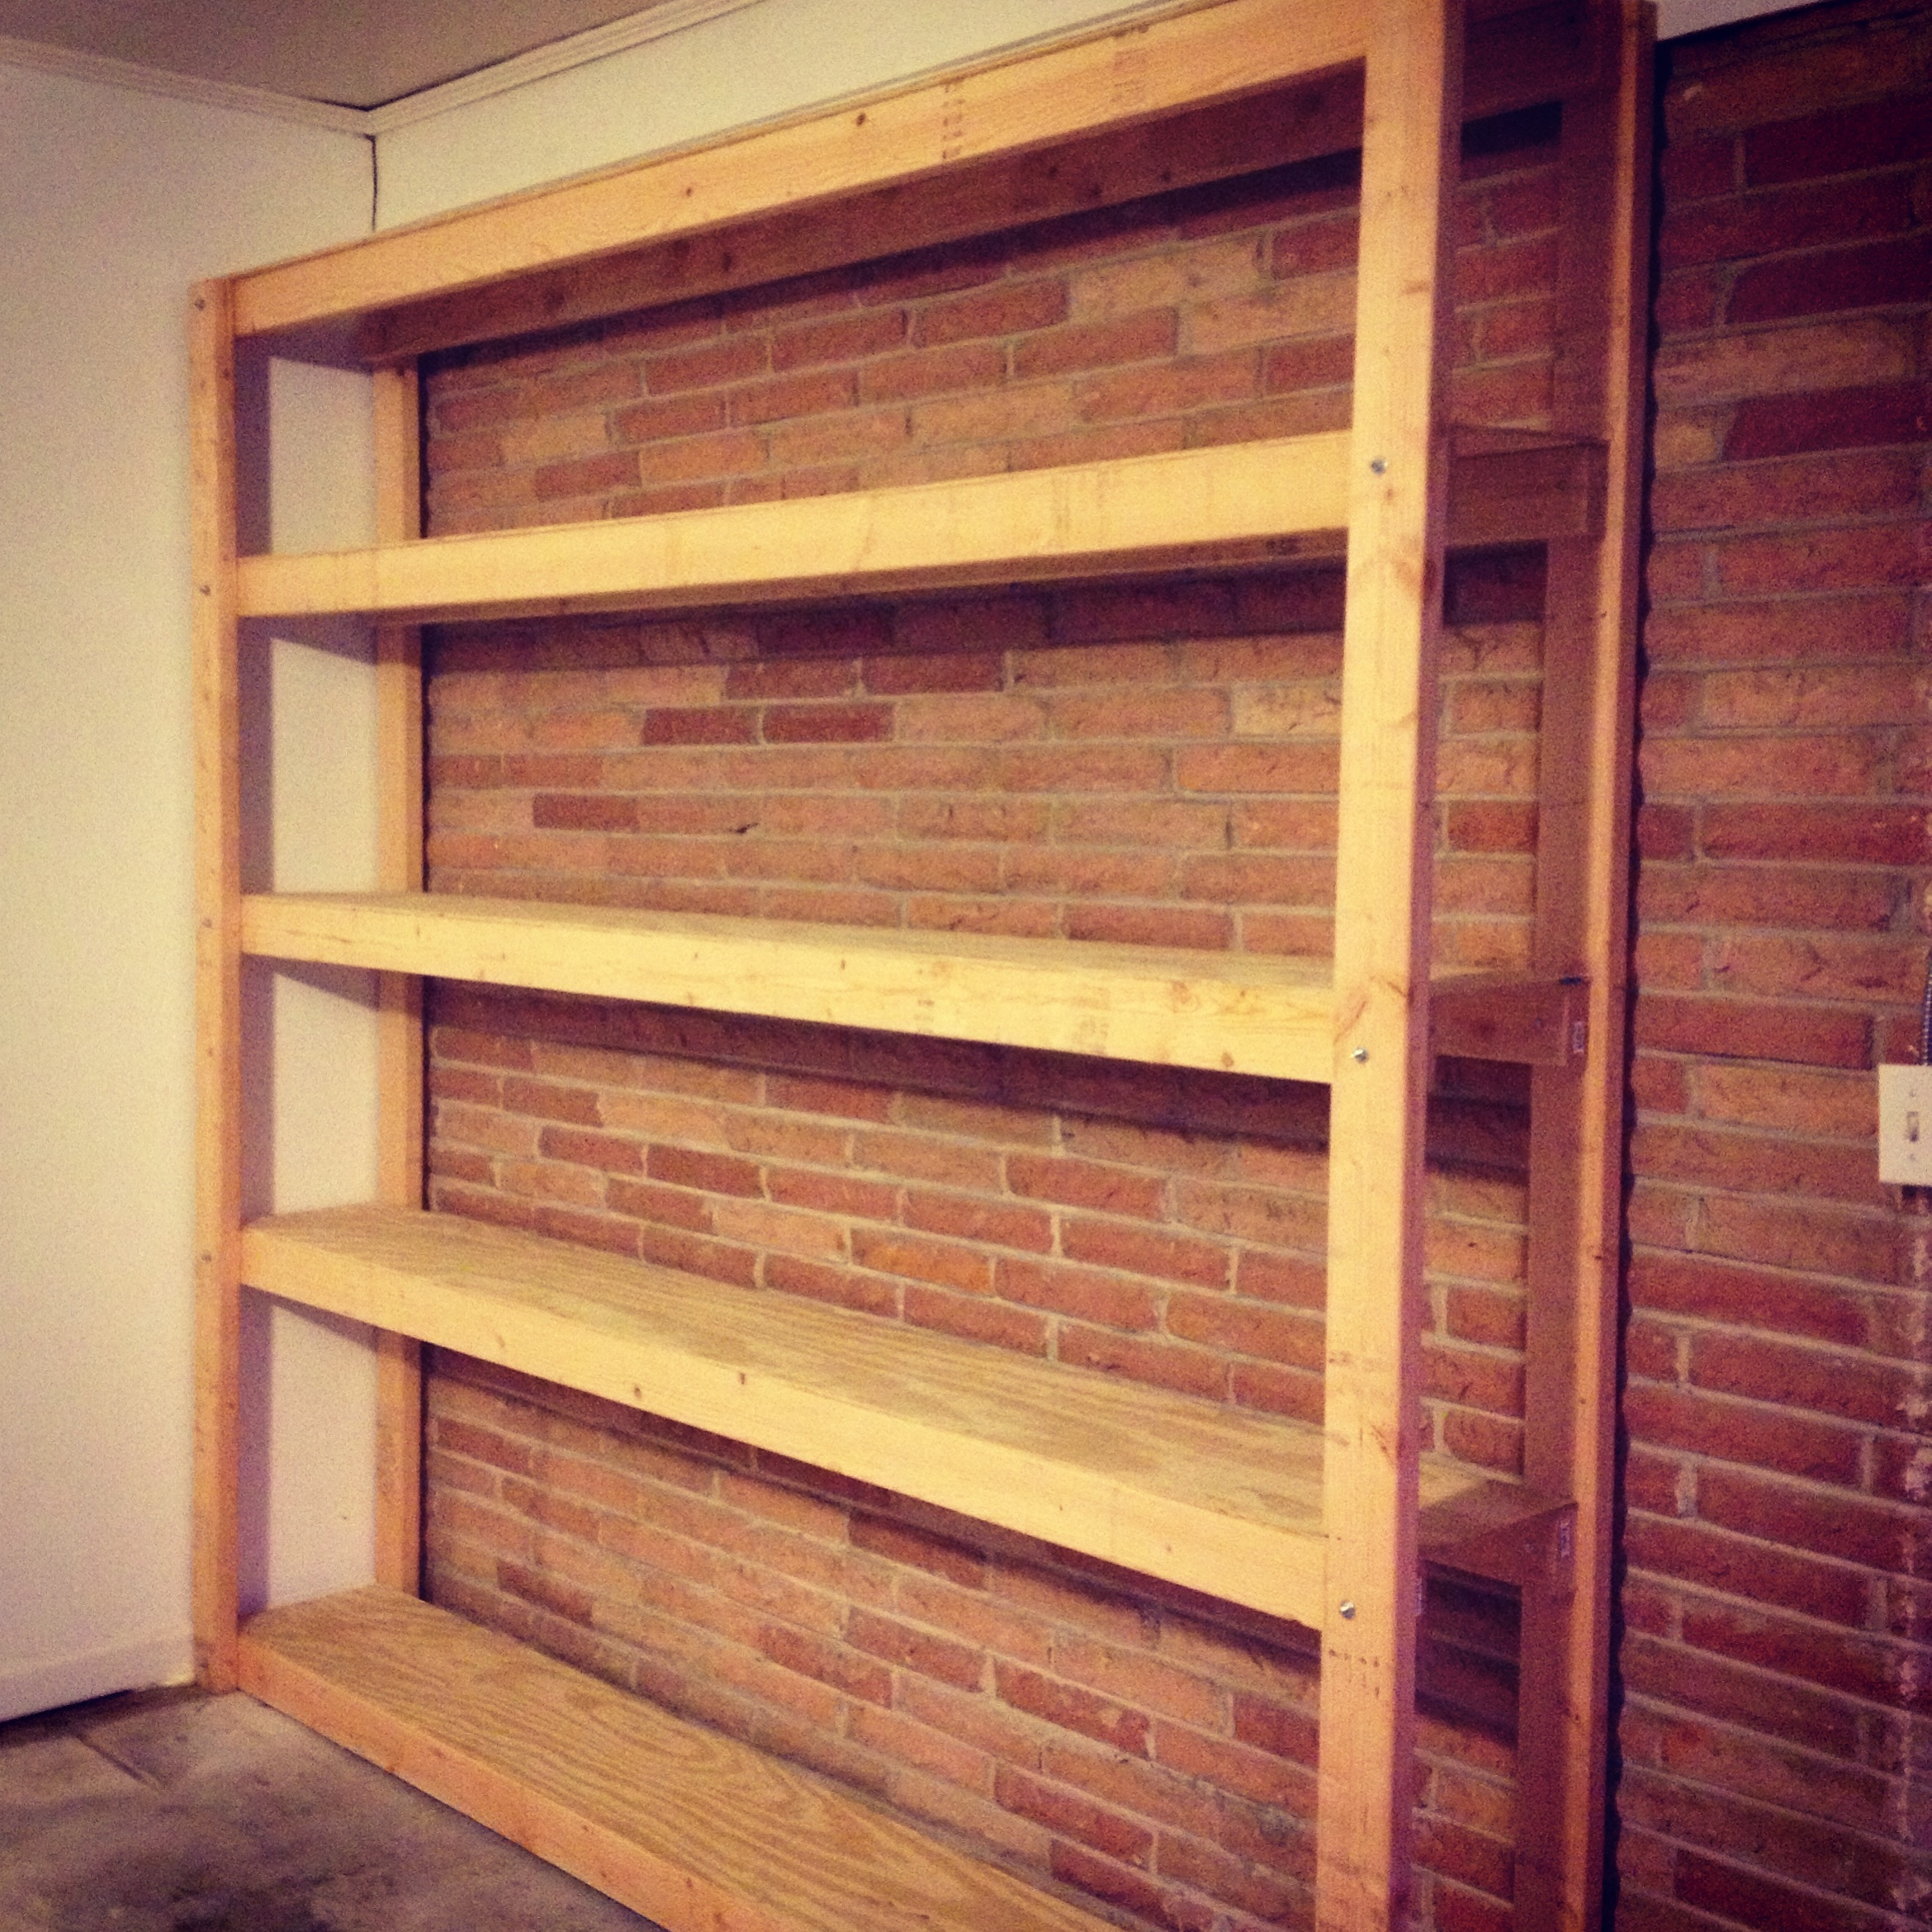 Build Garage Wall Shelves How To Build Shelves For Your Garage Parties For Pennies